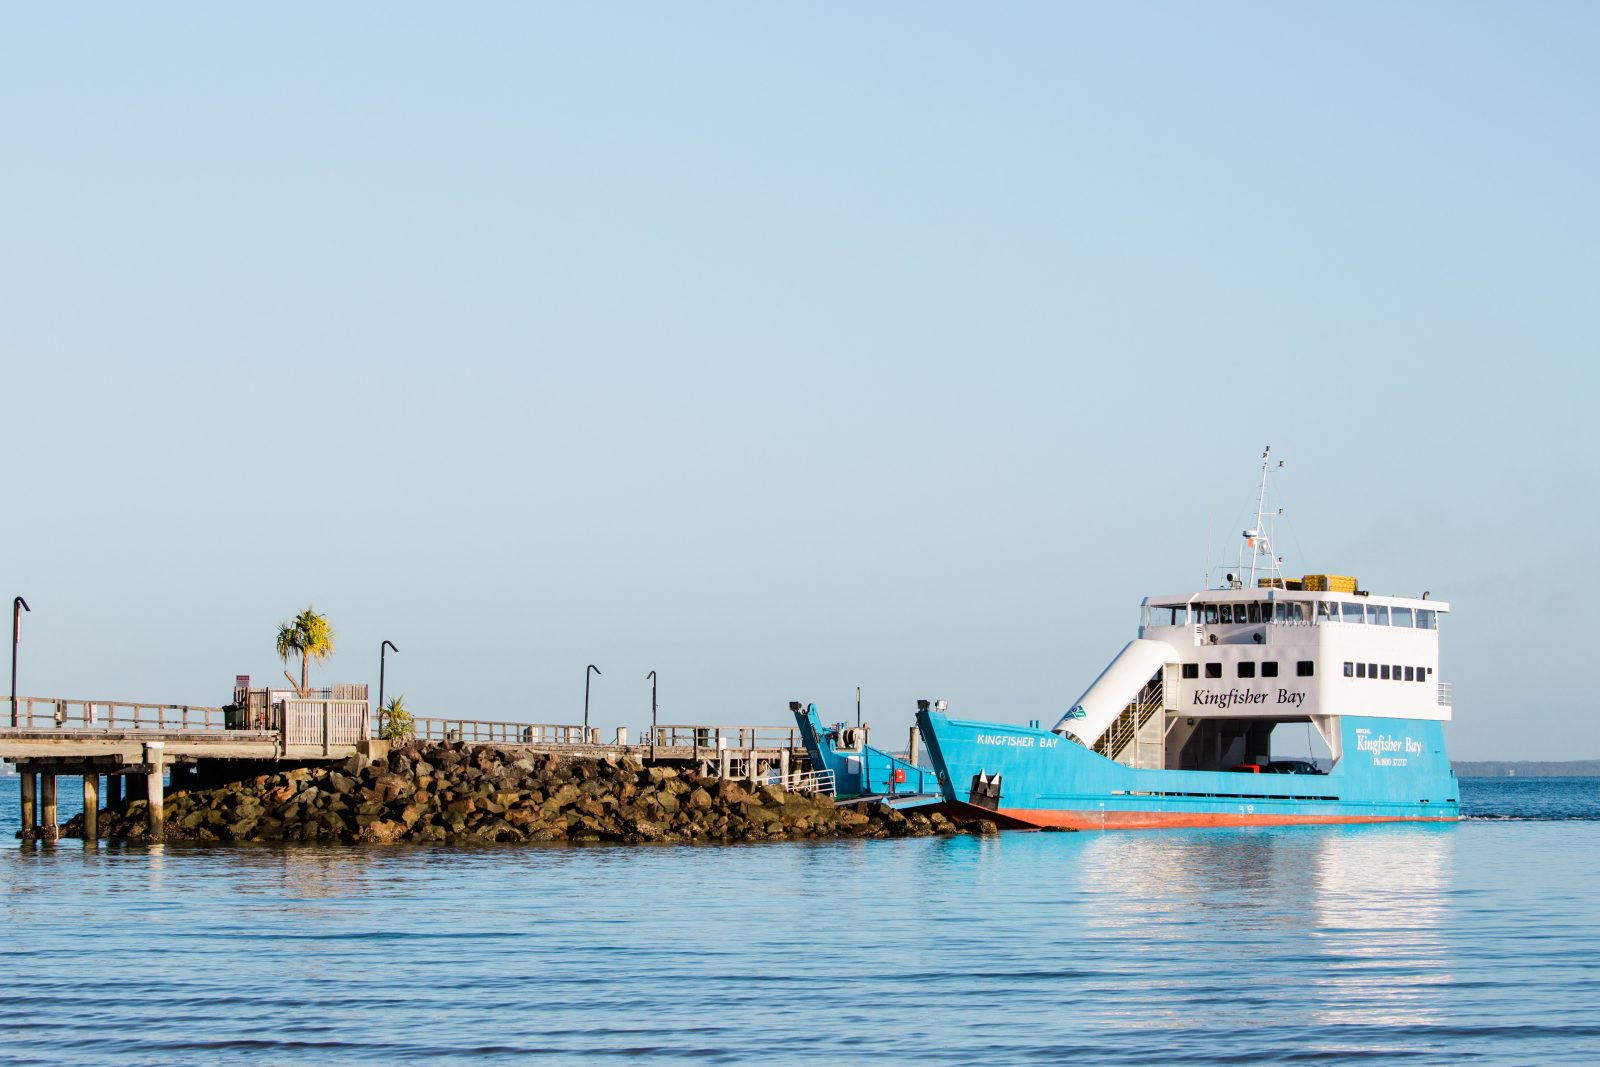 Kingfisher Bay Ferry